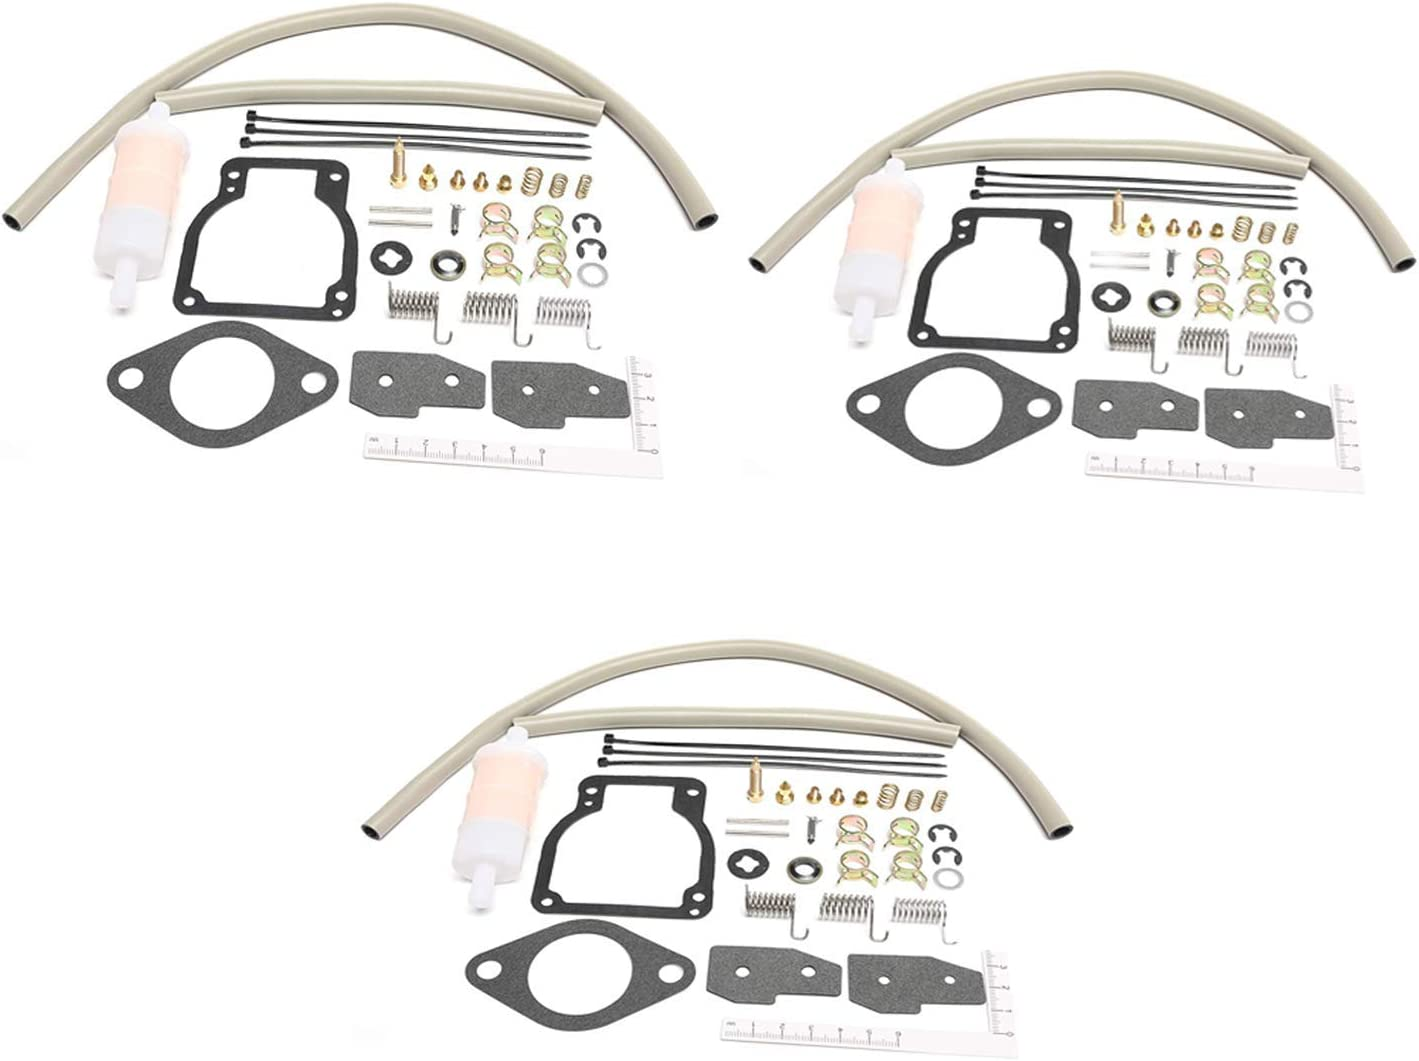 Unepart 18-7750-1 Carburetor Kit For Sierra Mercury Mariner Outboard Motor Replaces 1395-8236354(pack of 3)